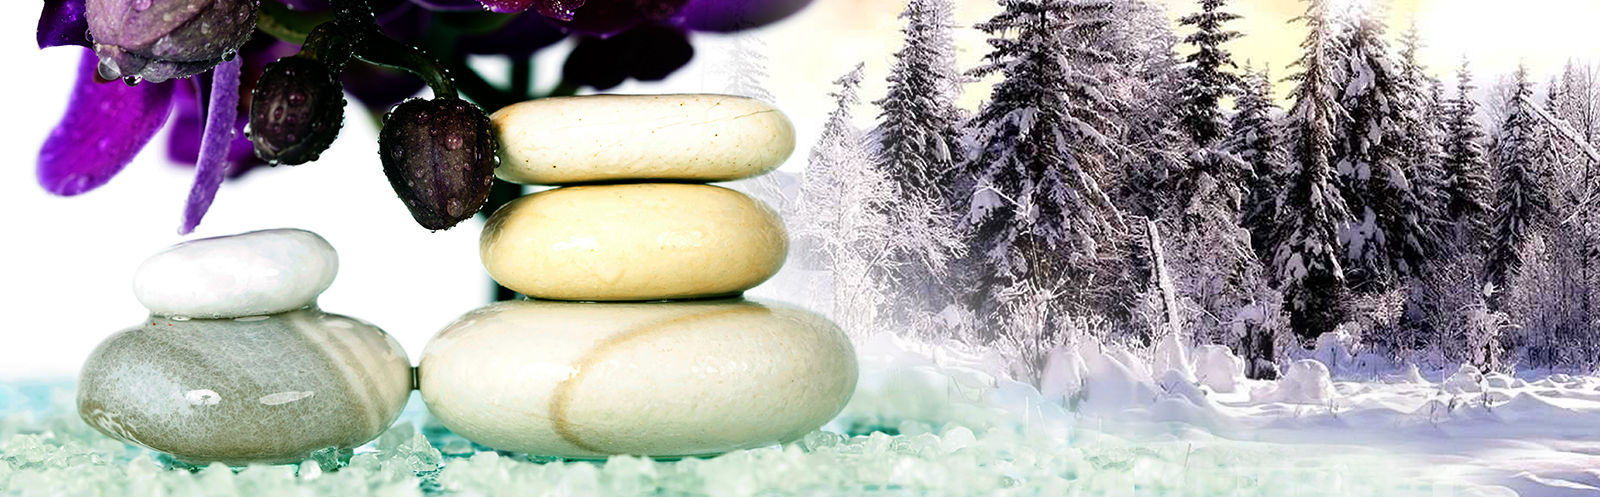 Marble Cold Stone Massage Therapy